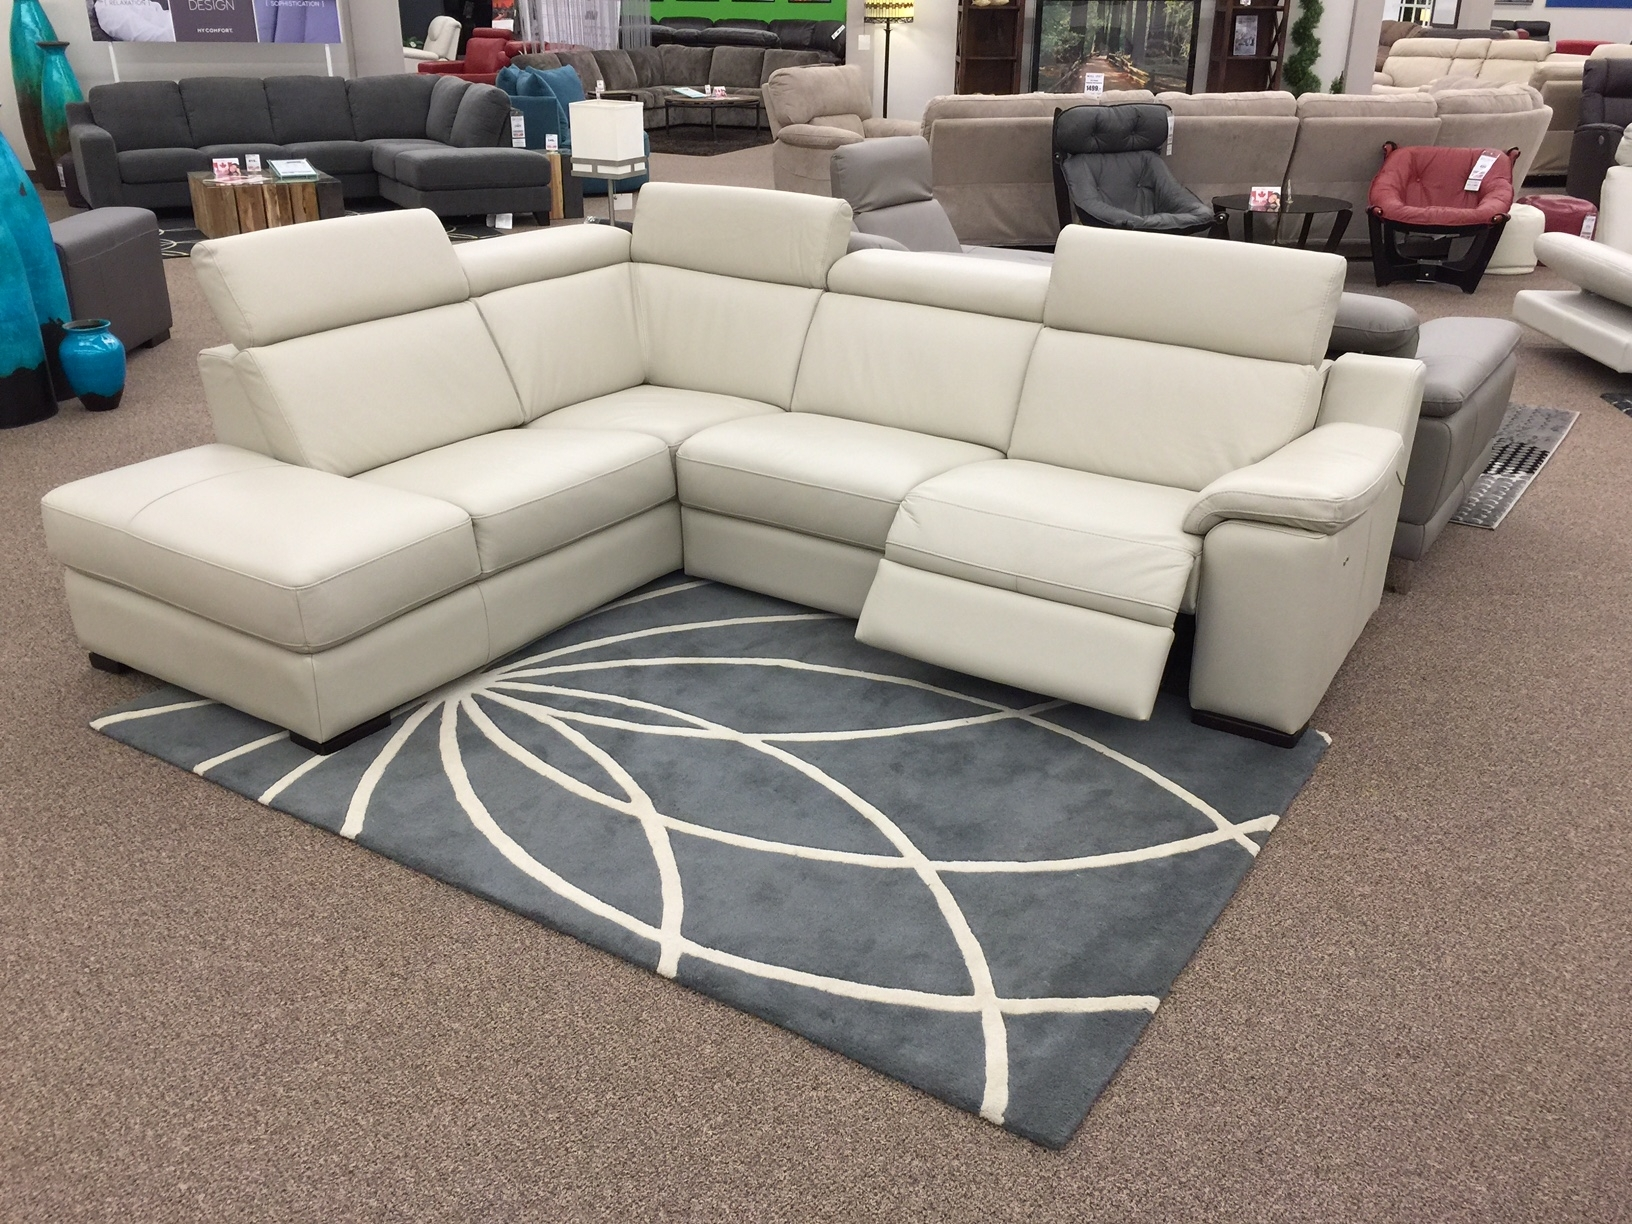 The Ashlynn Sectional Just Arrived At Sofa Land! This 100% Leather For Sectional Sofas In Stock (Image 8 of 10)